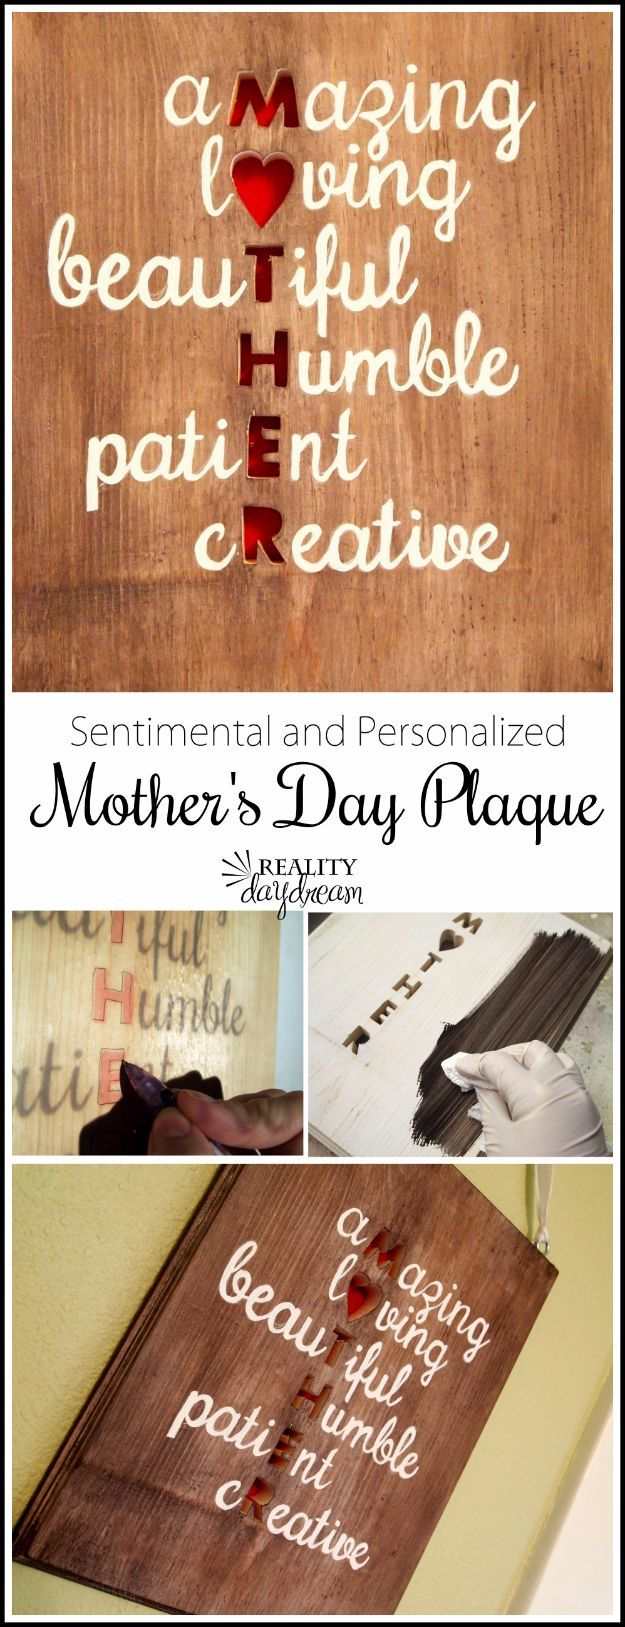 35 creatively thoughtful diy mothers day gifts pinterest sons creative diy mothers day gifts ideas wall art for mom thoughtful homemade gifts for mom handmade ideas from daughter son kids teens or baby unique solutioingenieria Image collections